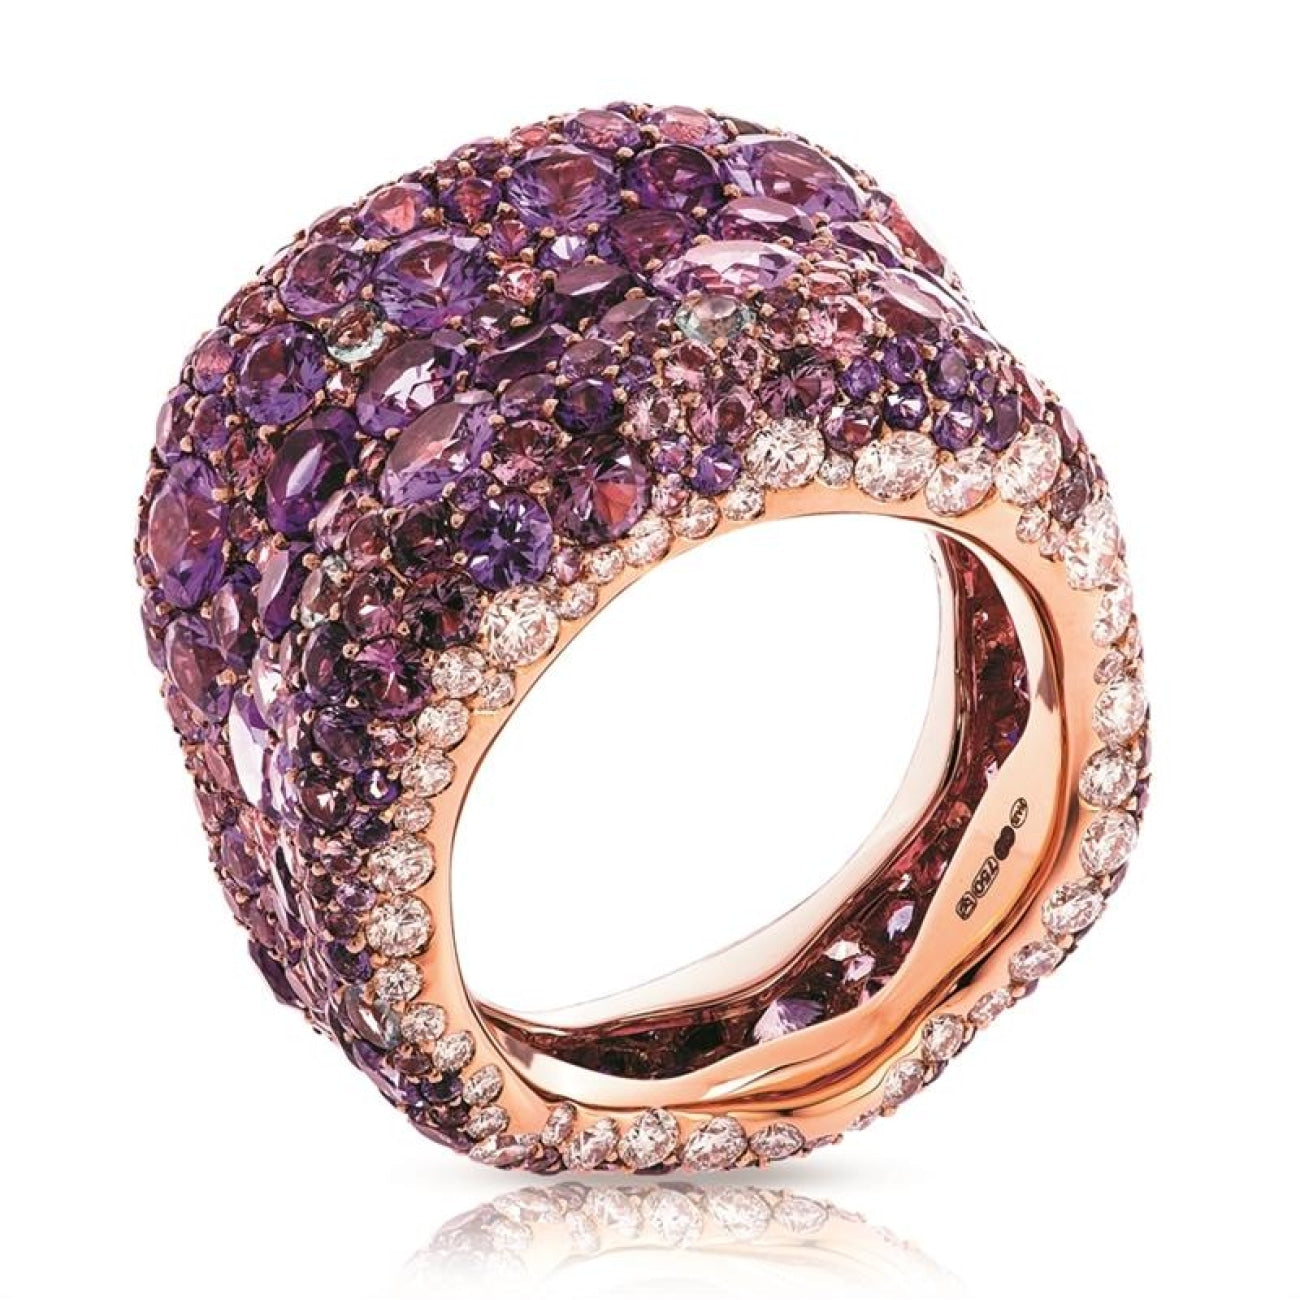 Fabergé Jewelry - EMOTION 18K ROSE GOLD WHITE DIAMOND & PURPLE GEMSTONE ENCRUSTED CHUNKY RING | Manfredi Jewels